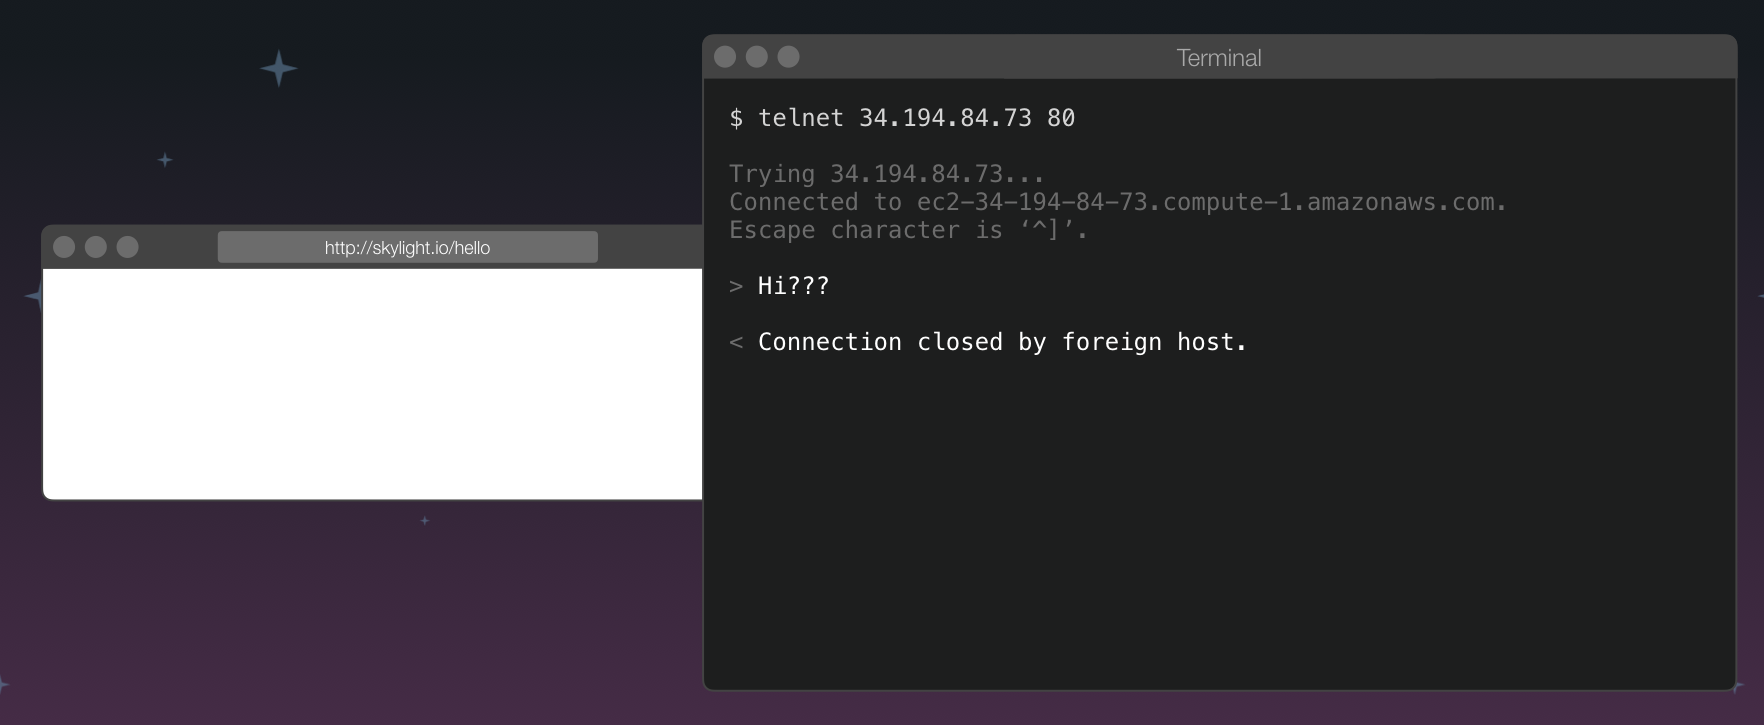 An example telnet session